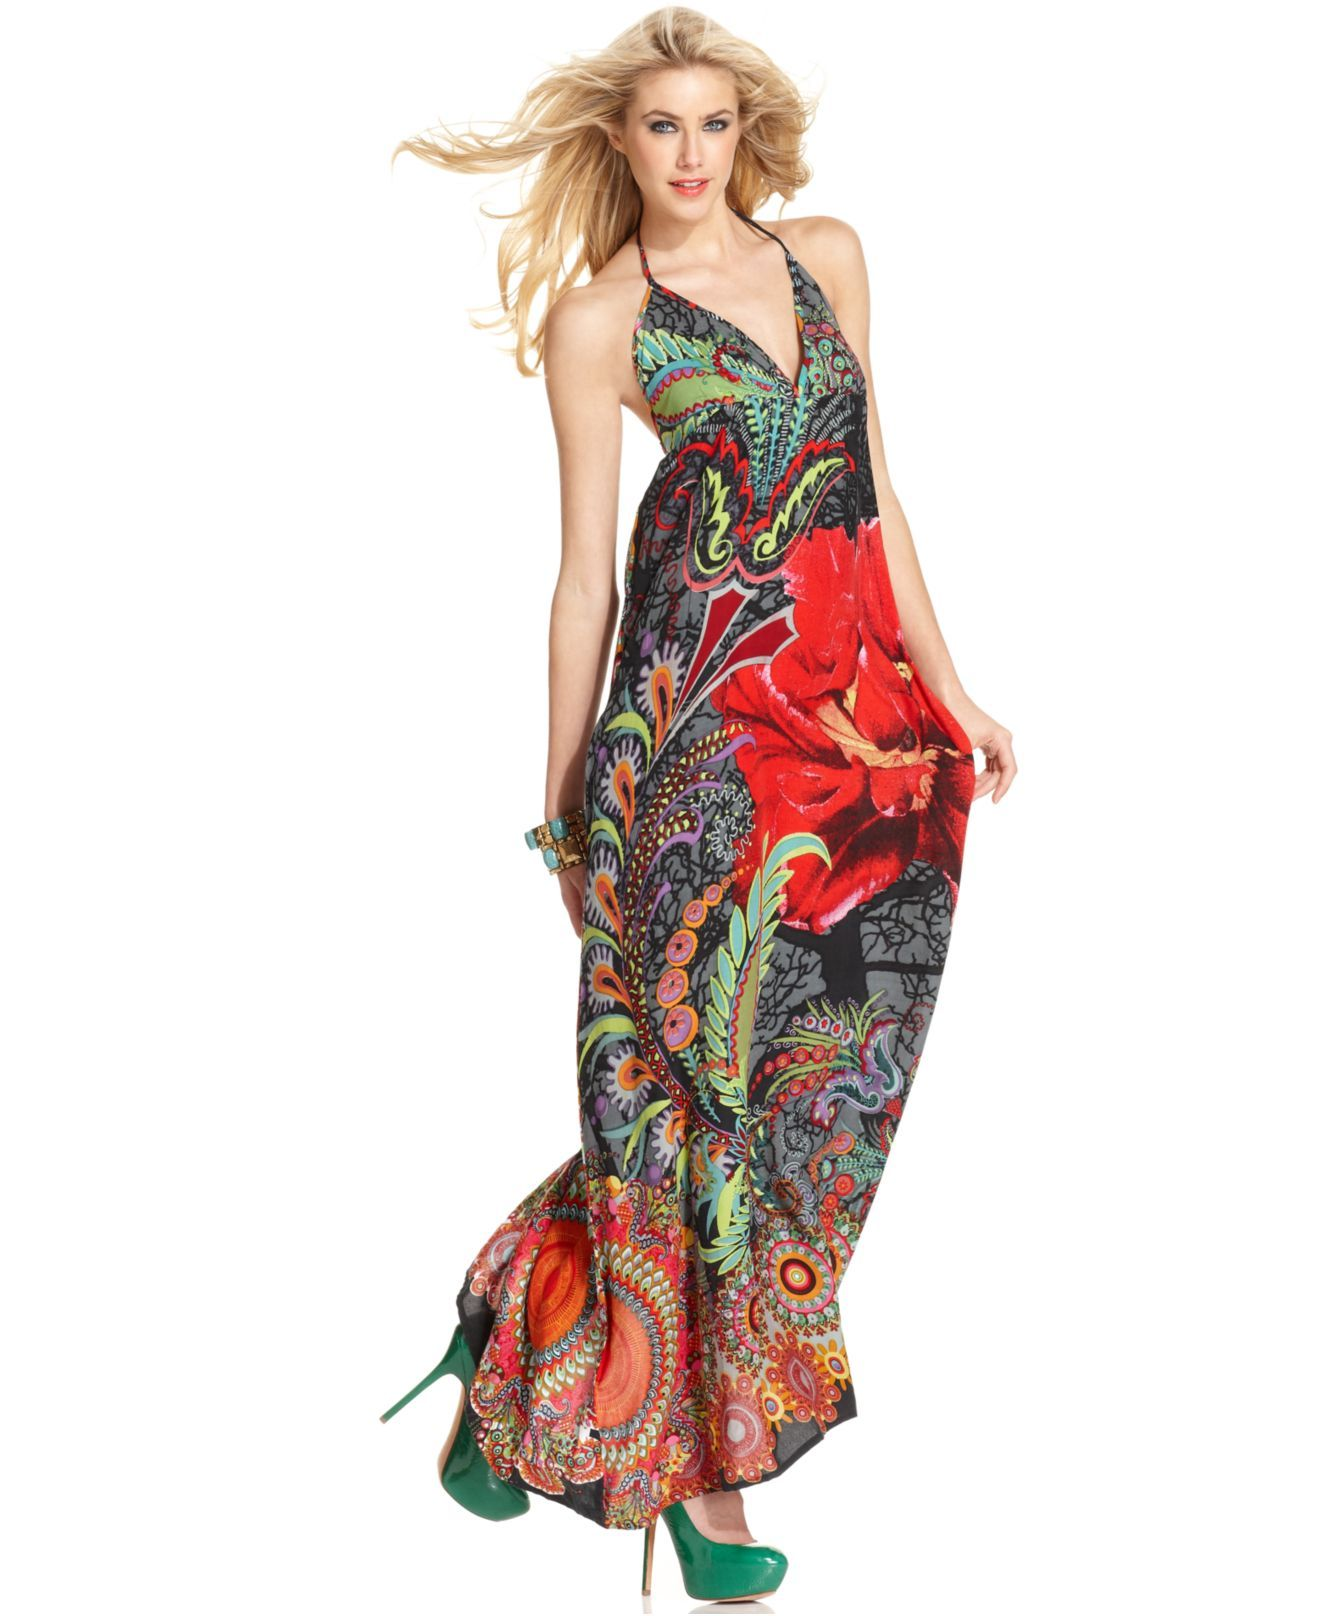 0b2afd6a96ebd Desigual Dress, Sleeveless V-Neck Halter Floral-Printed Maxi - Womens  Dresses - Macy's